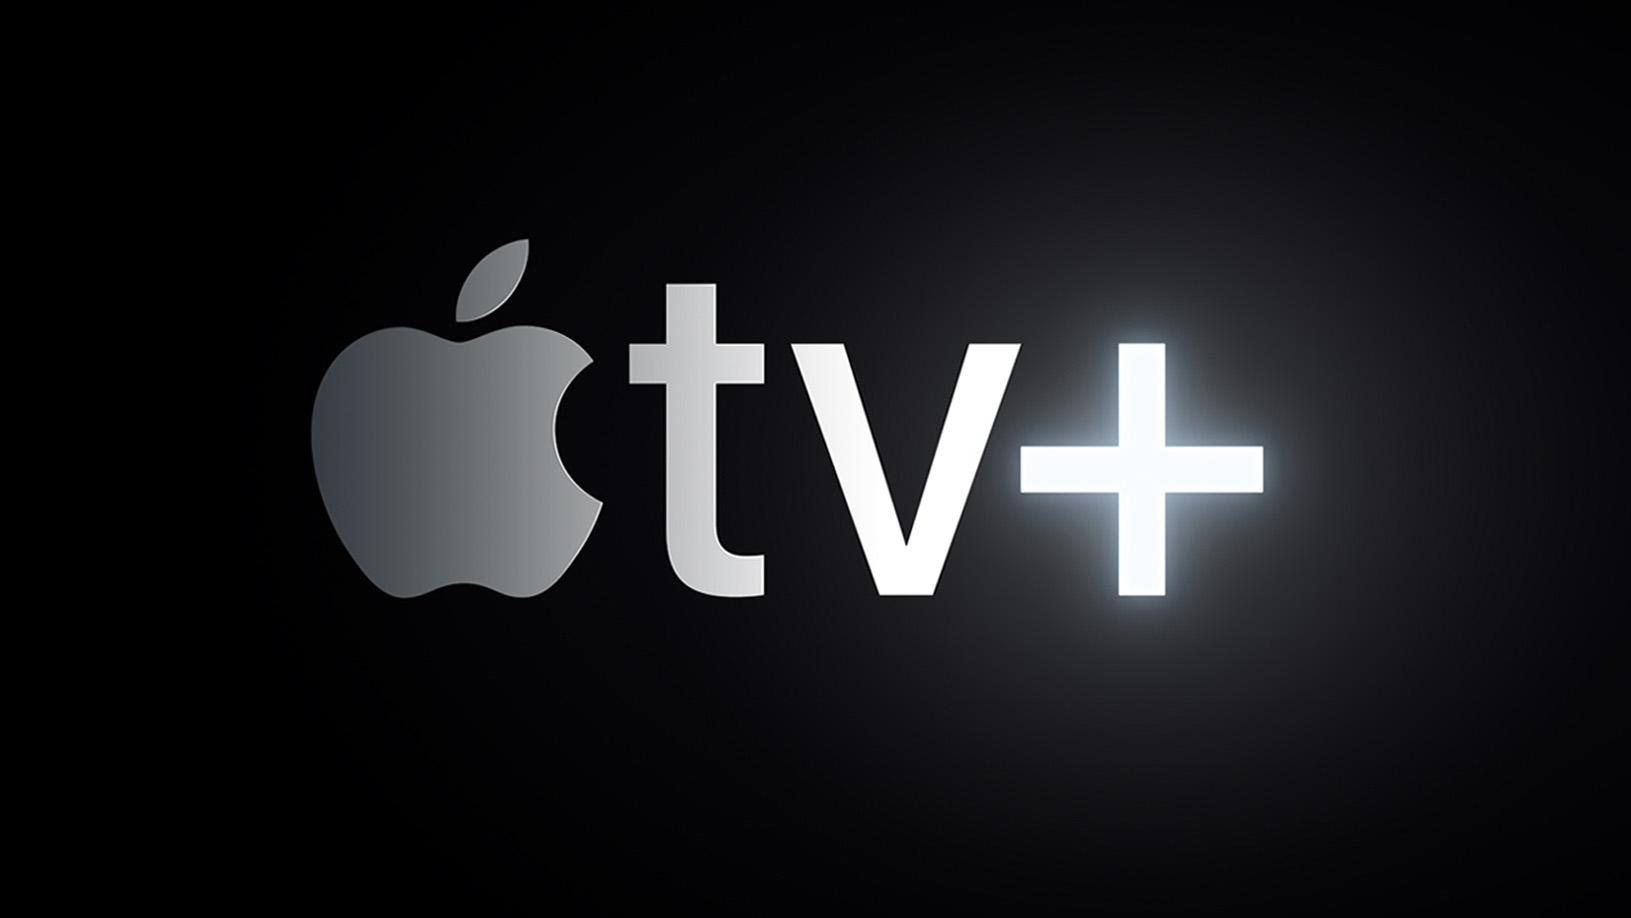 Apple TV+: See, For All Mankind, Dickinson und The Morning Show bekommen zweite Staffel